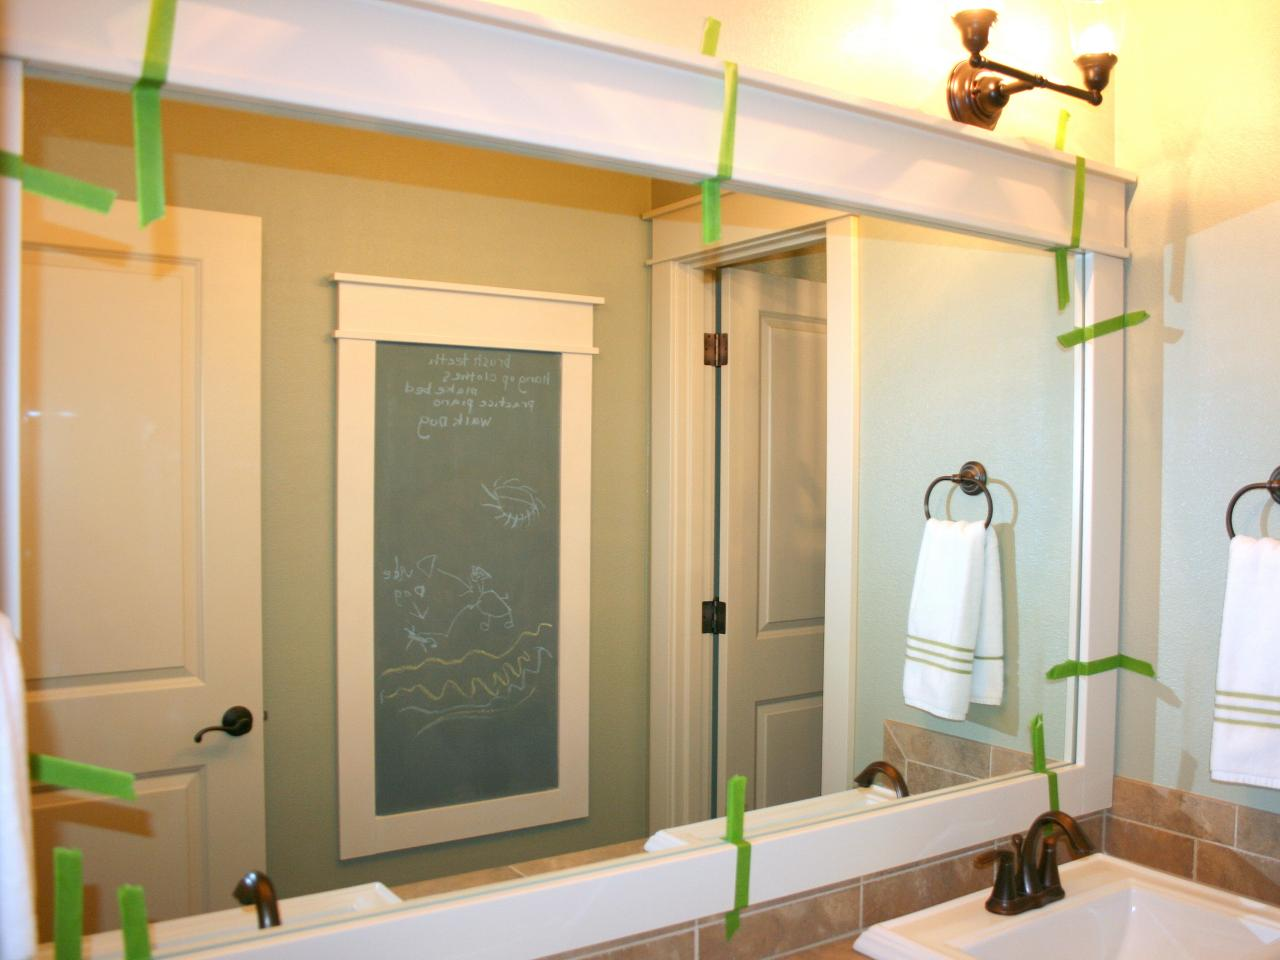 How to frame a mirror hgtv for How to frame mirror in bathroom